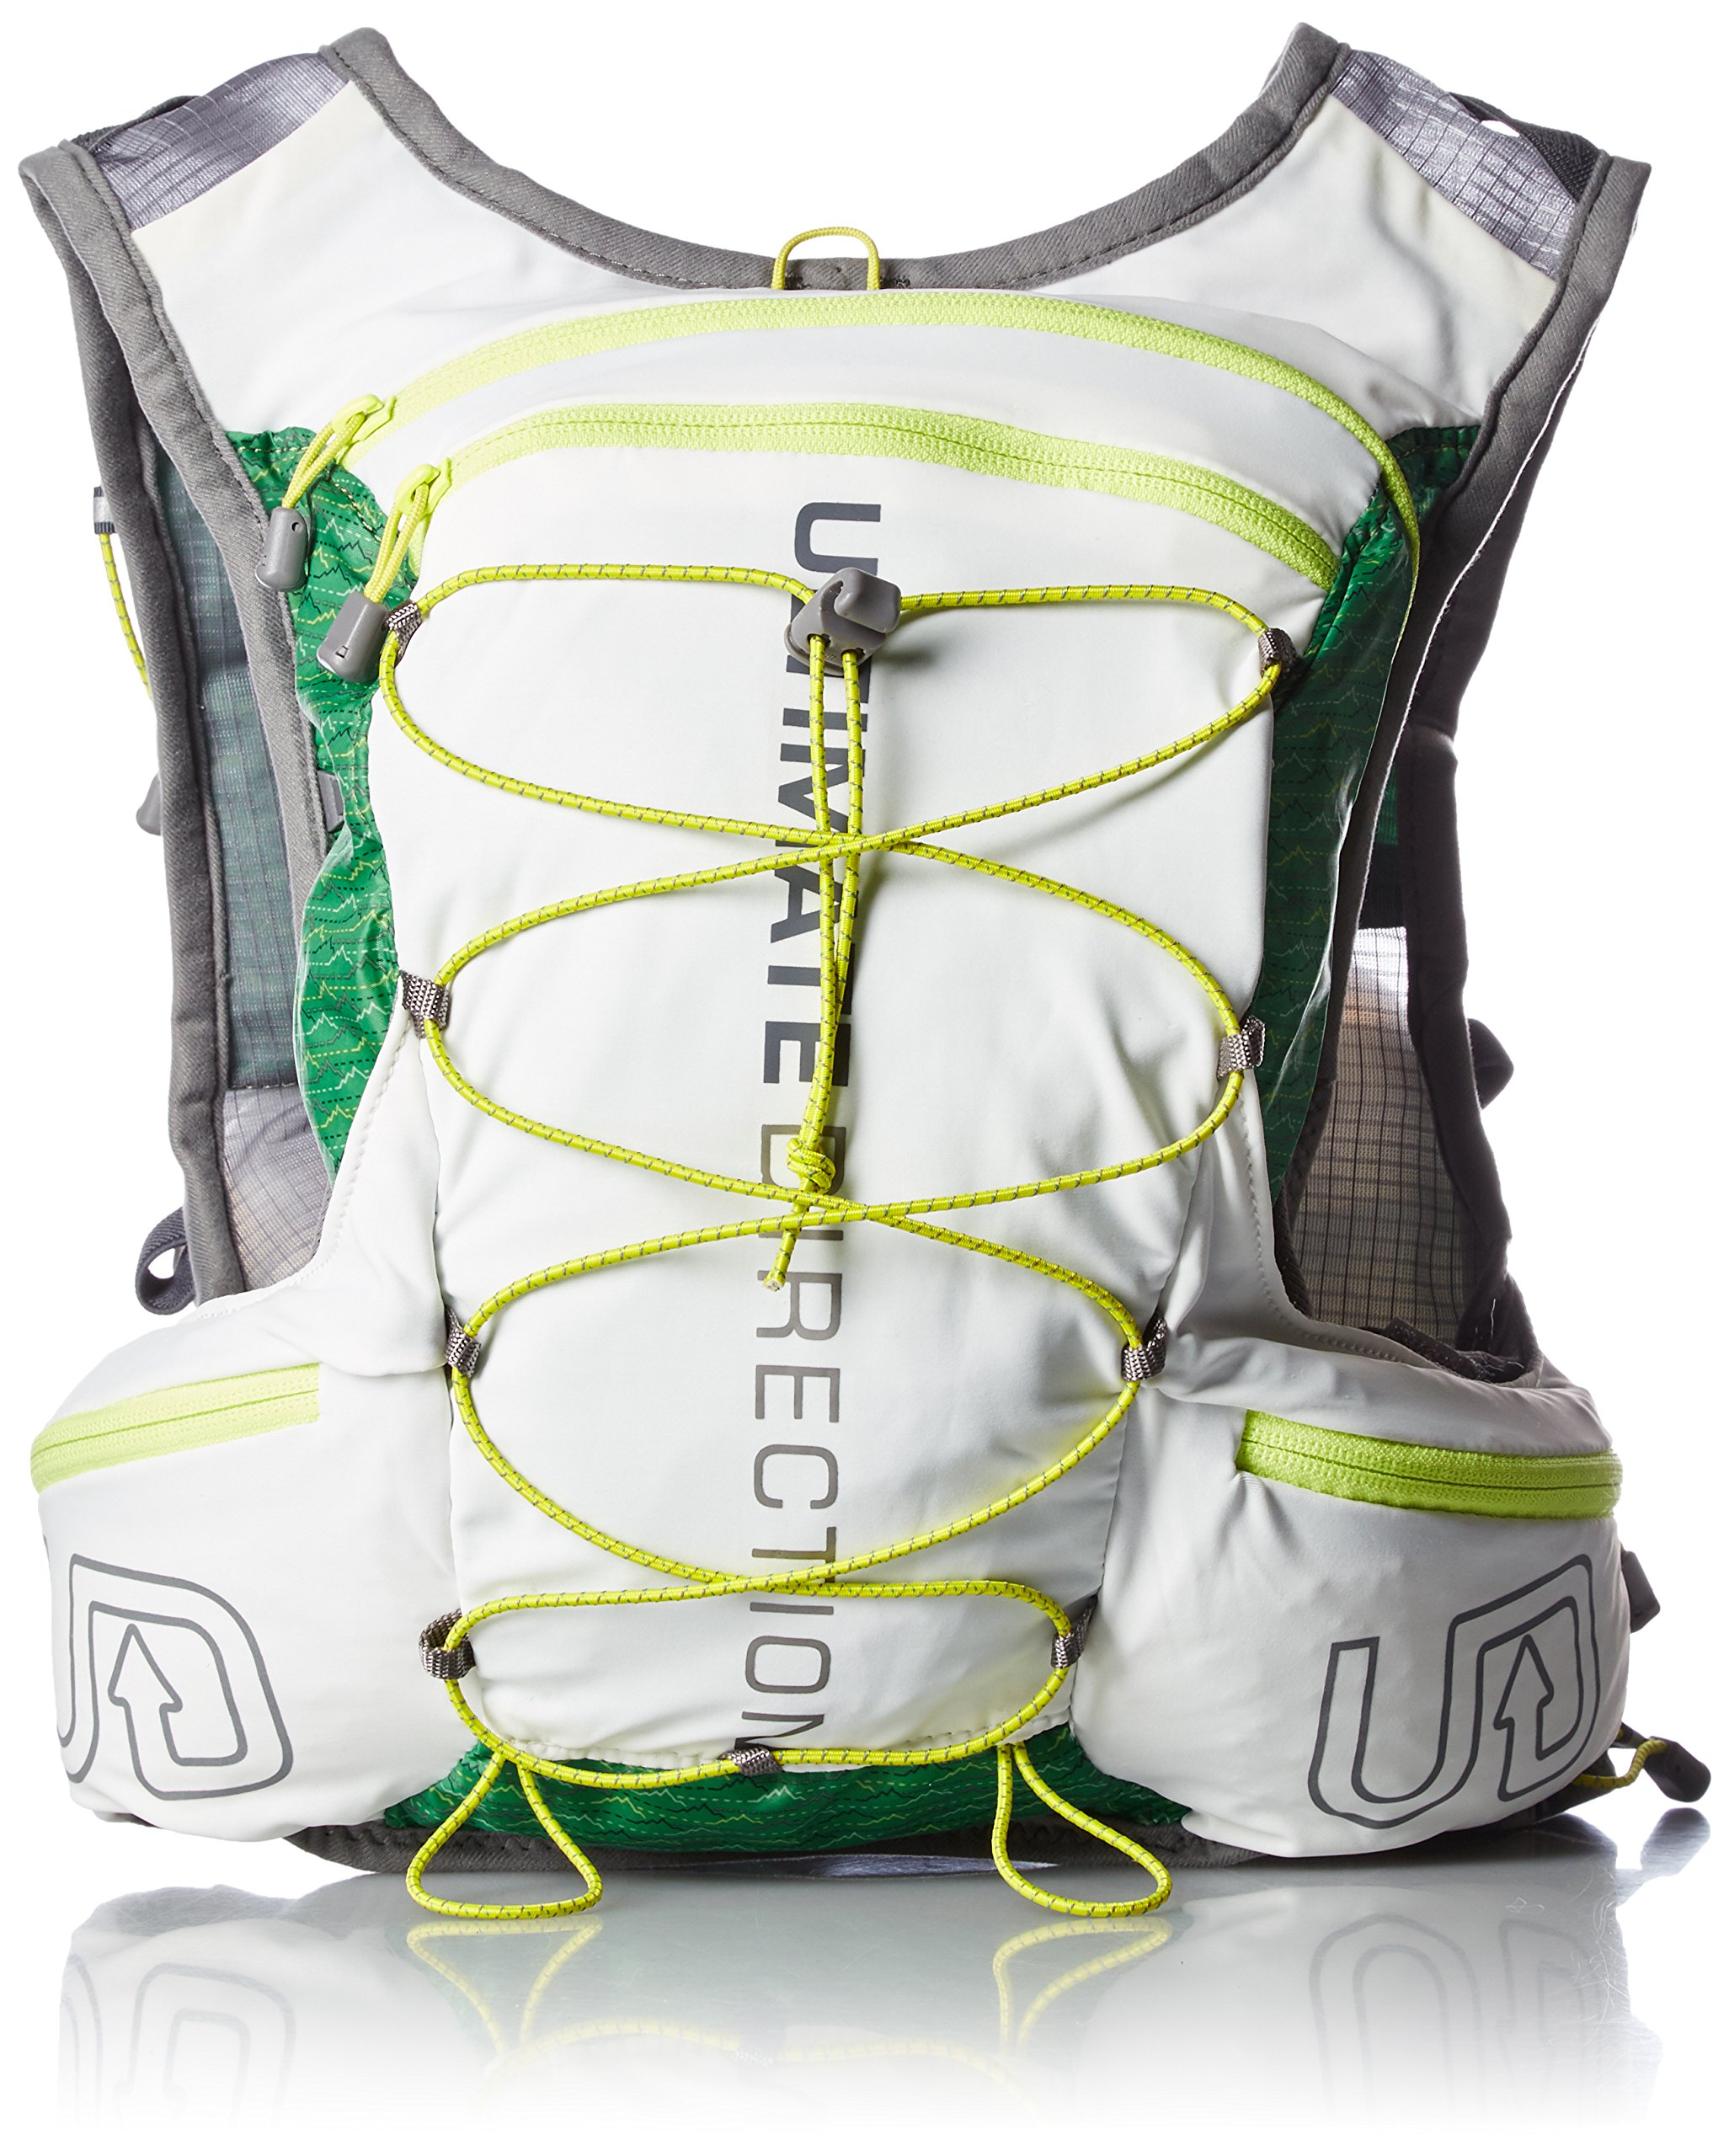 Ultimate Direction Jurek Fkt Hydration Backpack, White, SM